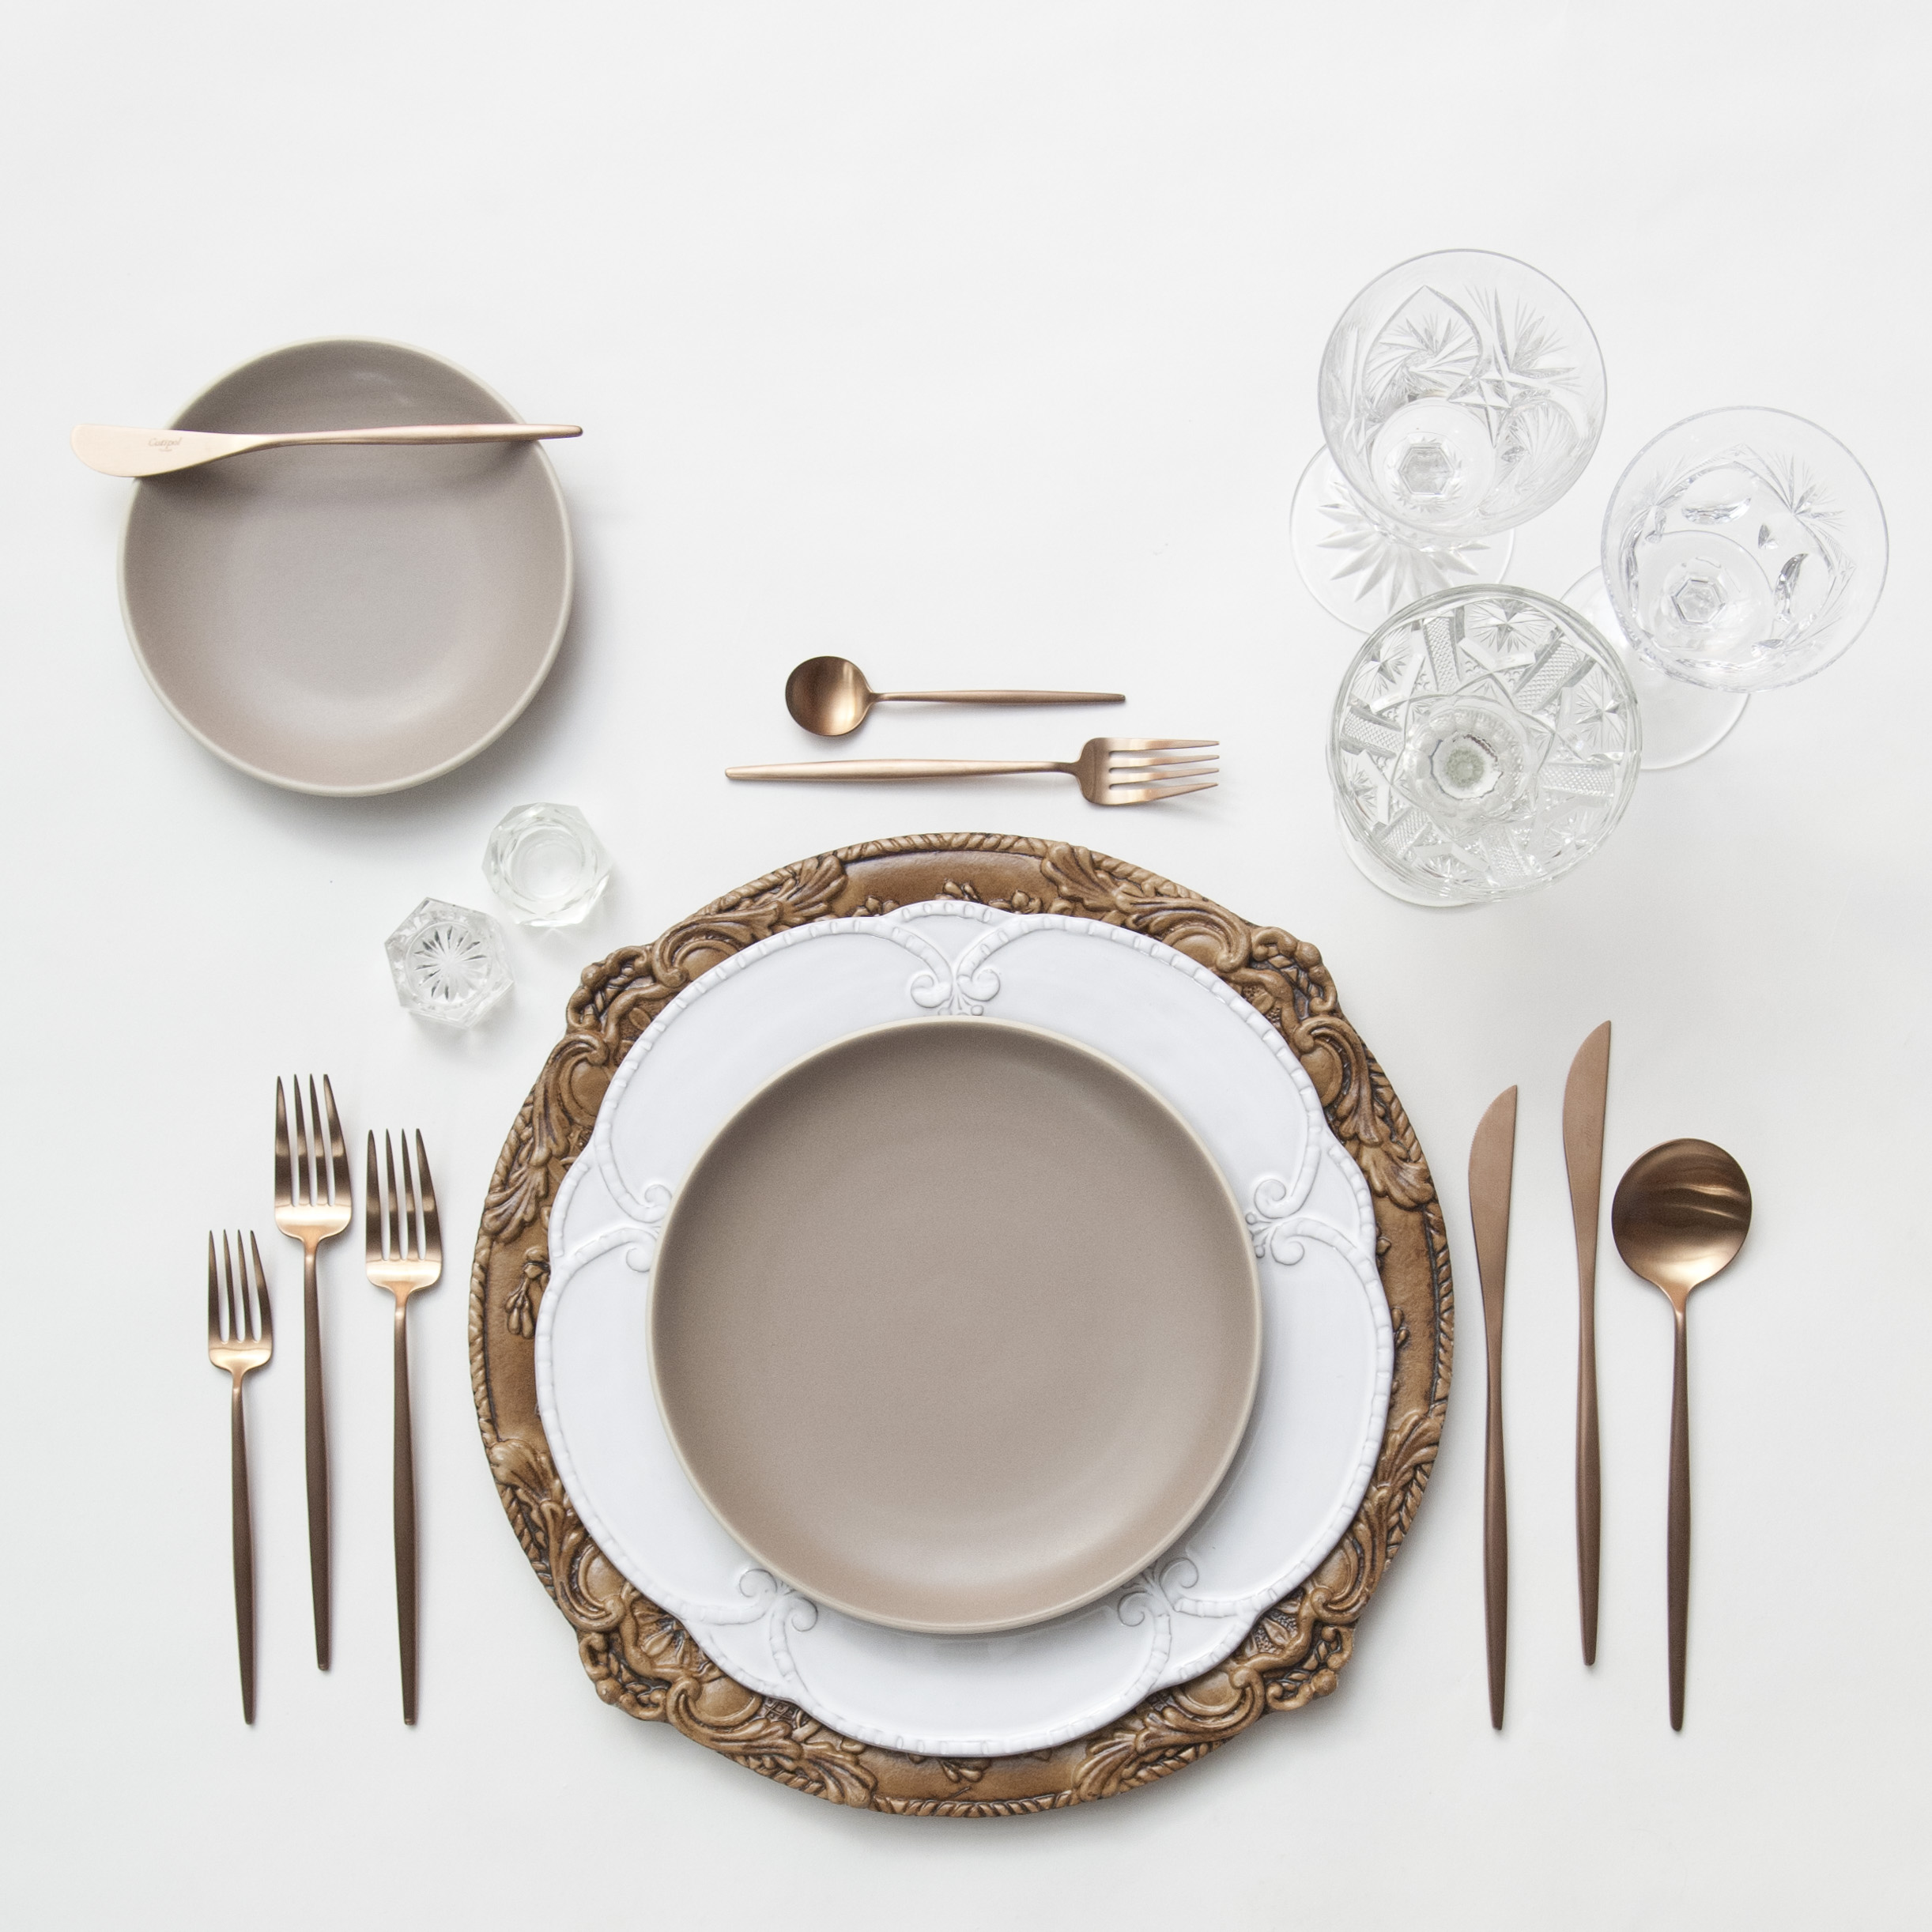 RENT: Verona Chargers in Walnut + Signature Collection Dinnerware + Heath Ceramics in French Grey + Moon Flatware in Brushed Rose Gold + Vintage Cut Crystal Goblets + Vintage Champagne Coupes + Antique Crystal Salt Cellars  SHOP: Verona Chargers in Walnut + Moon Flatware in Brushed Rose Gold